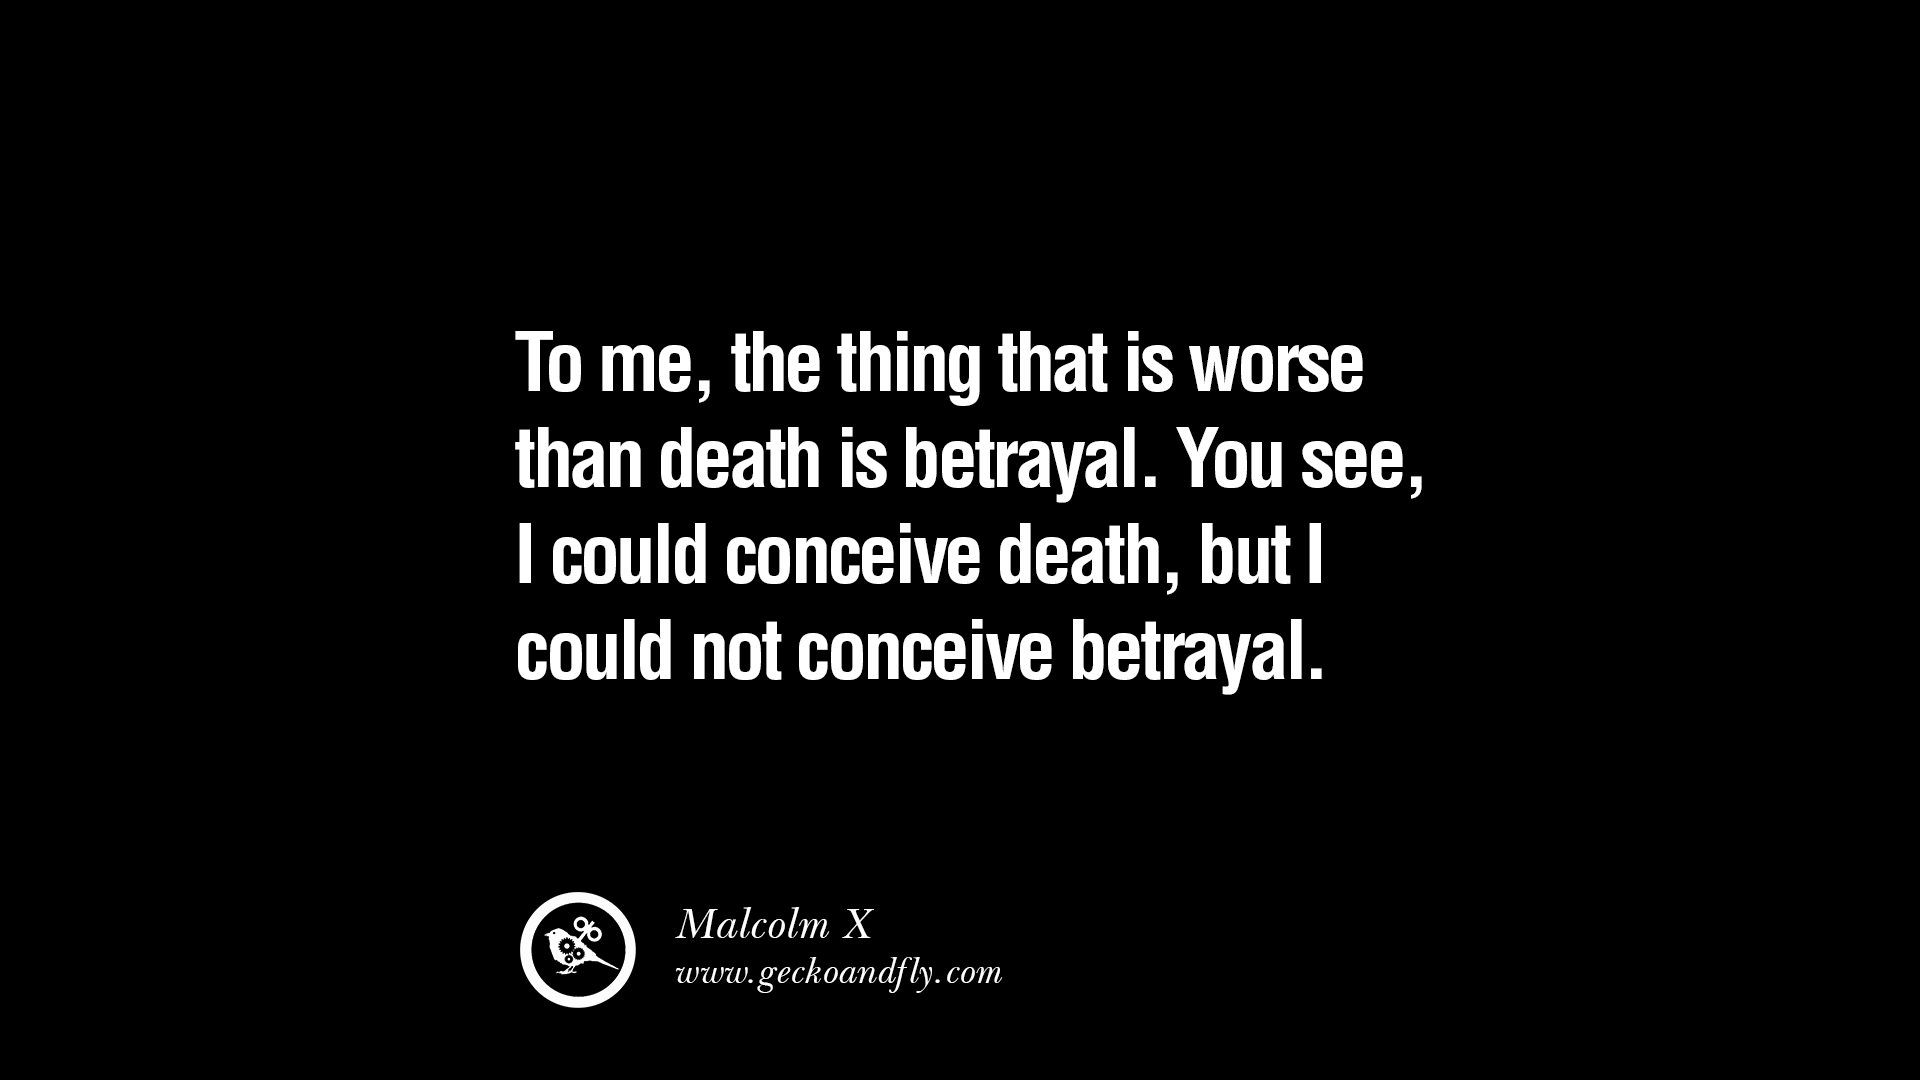 Bible Quotes About Family Betrayal: 25 Quotes On Friendship, Trust, Love And Betrayal